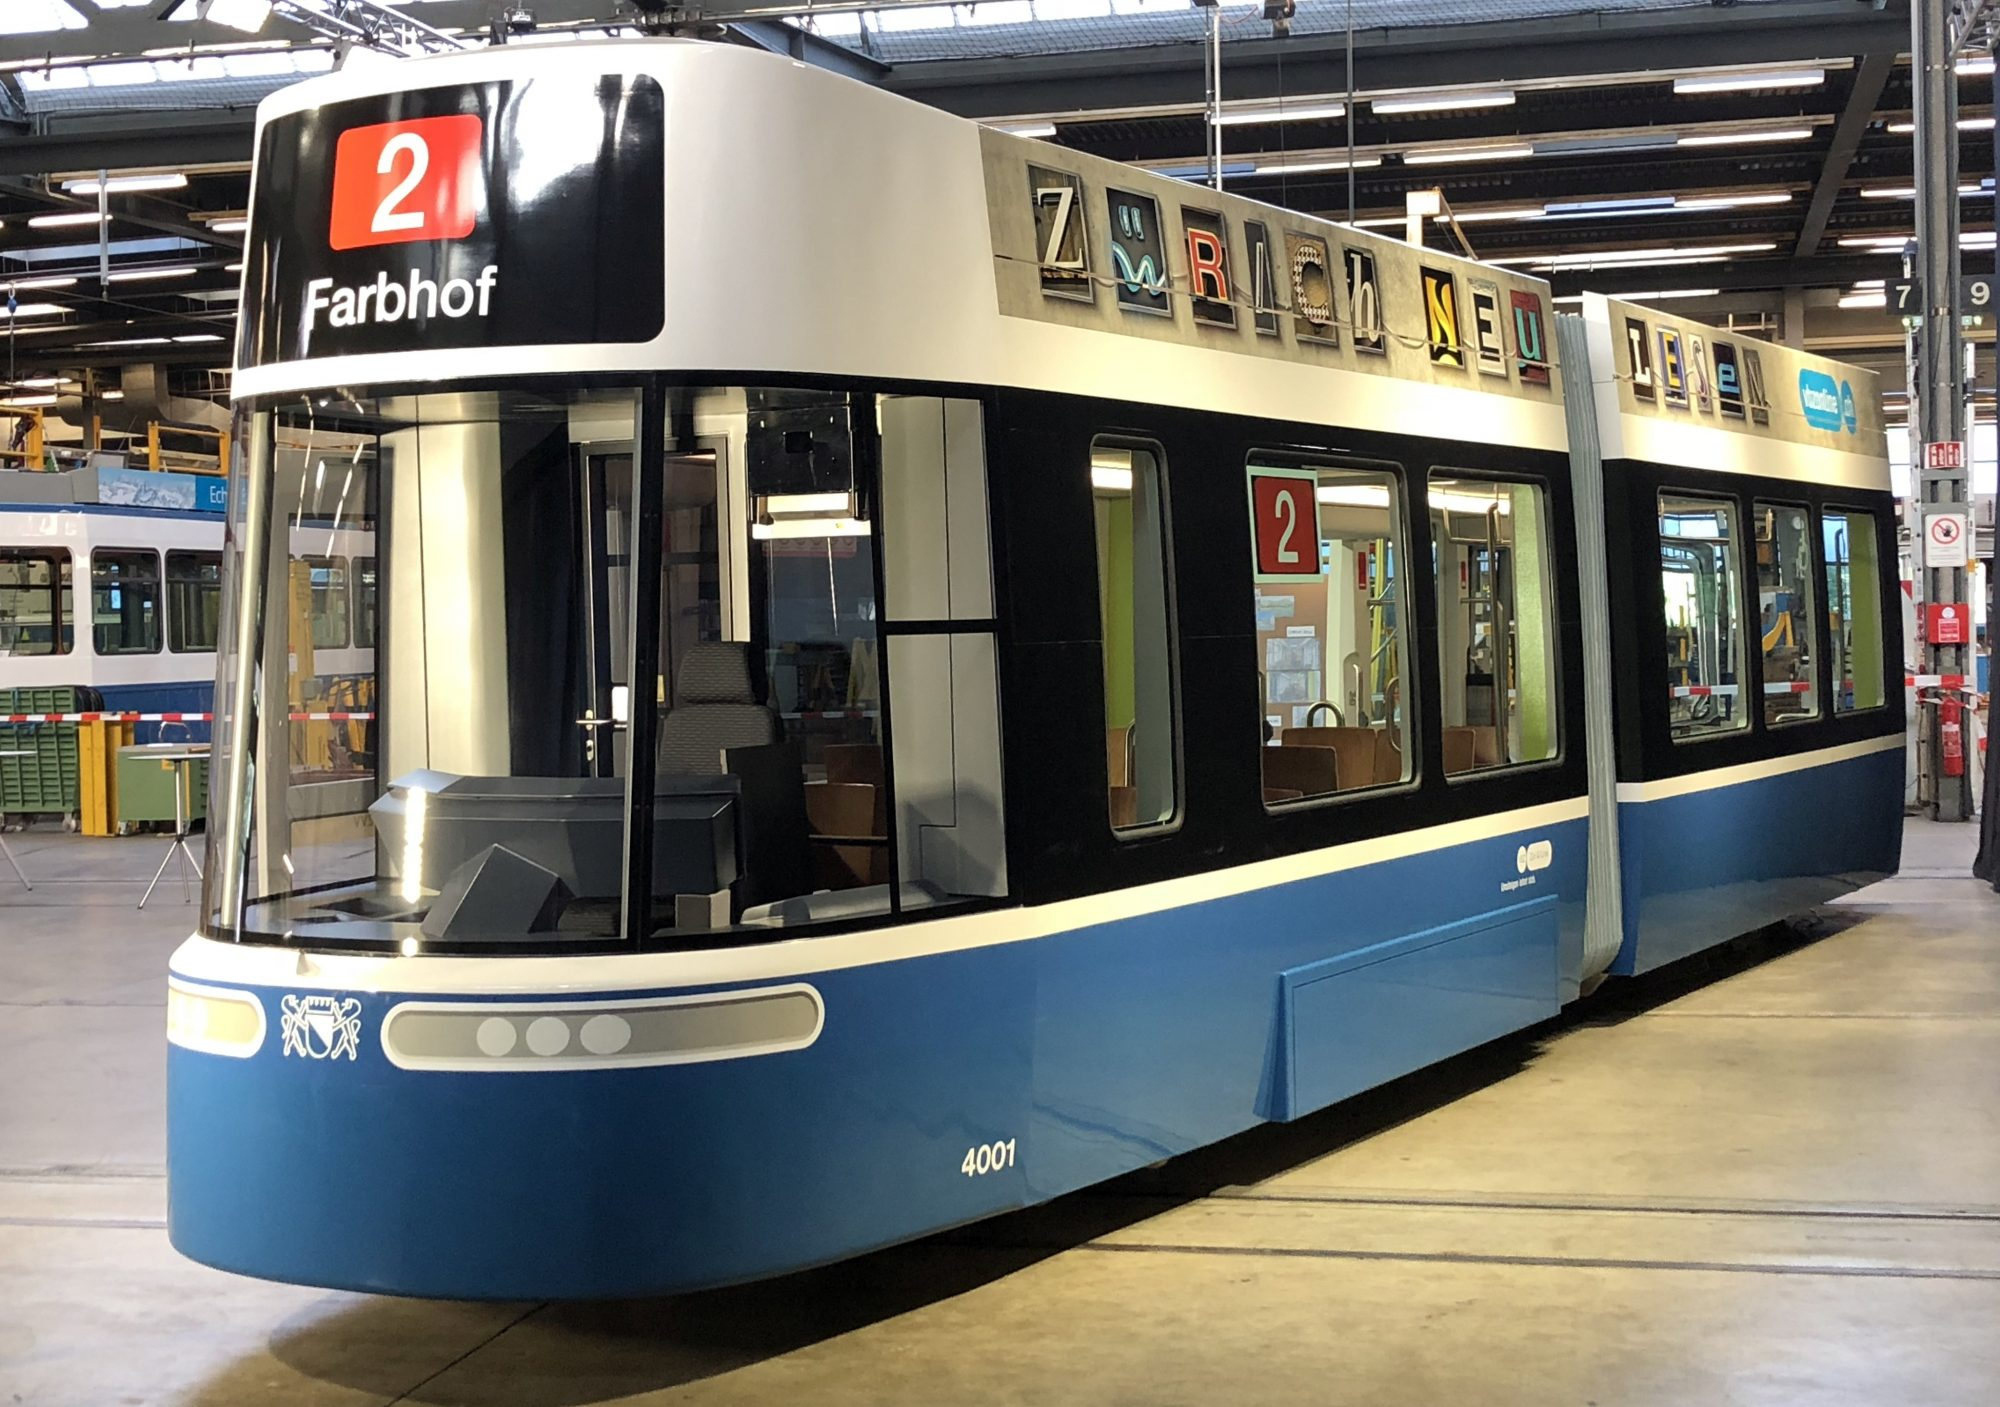 The VBZ workshop team fabricated a mock-up of the Bombardier FLEXITY tram model. Photo: Bombardier